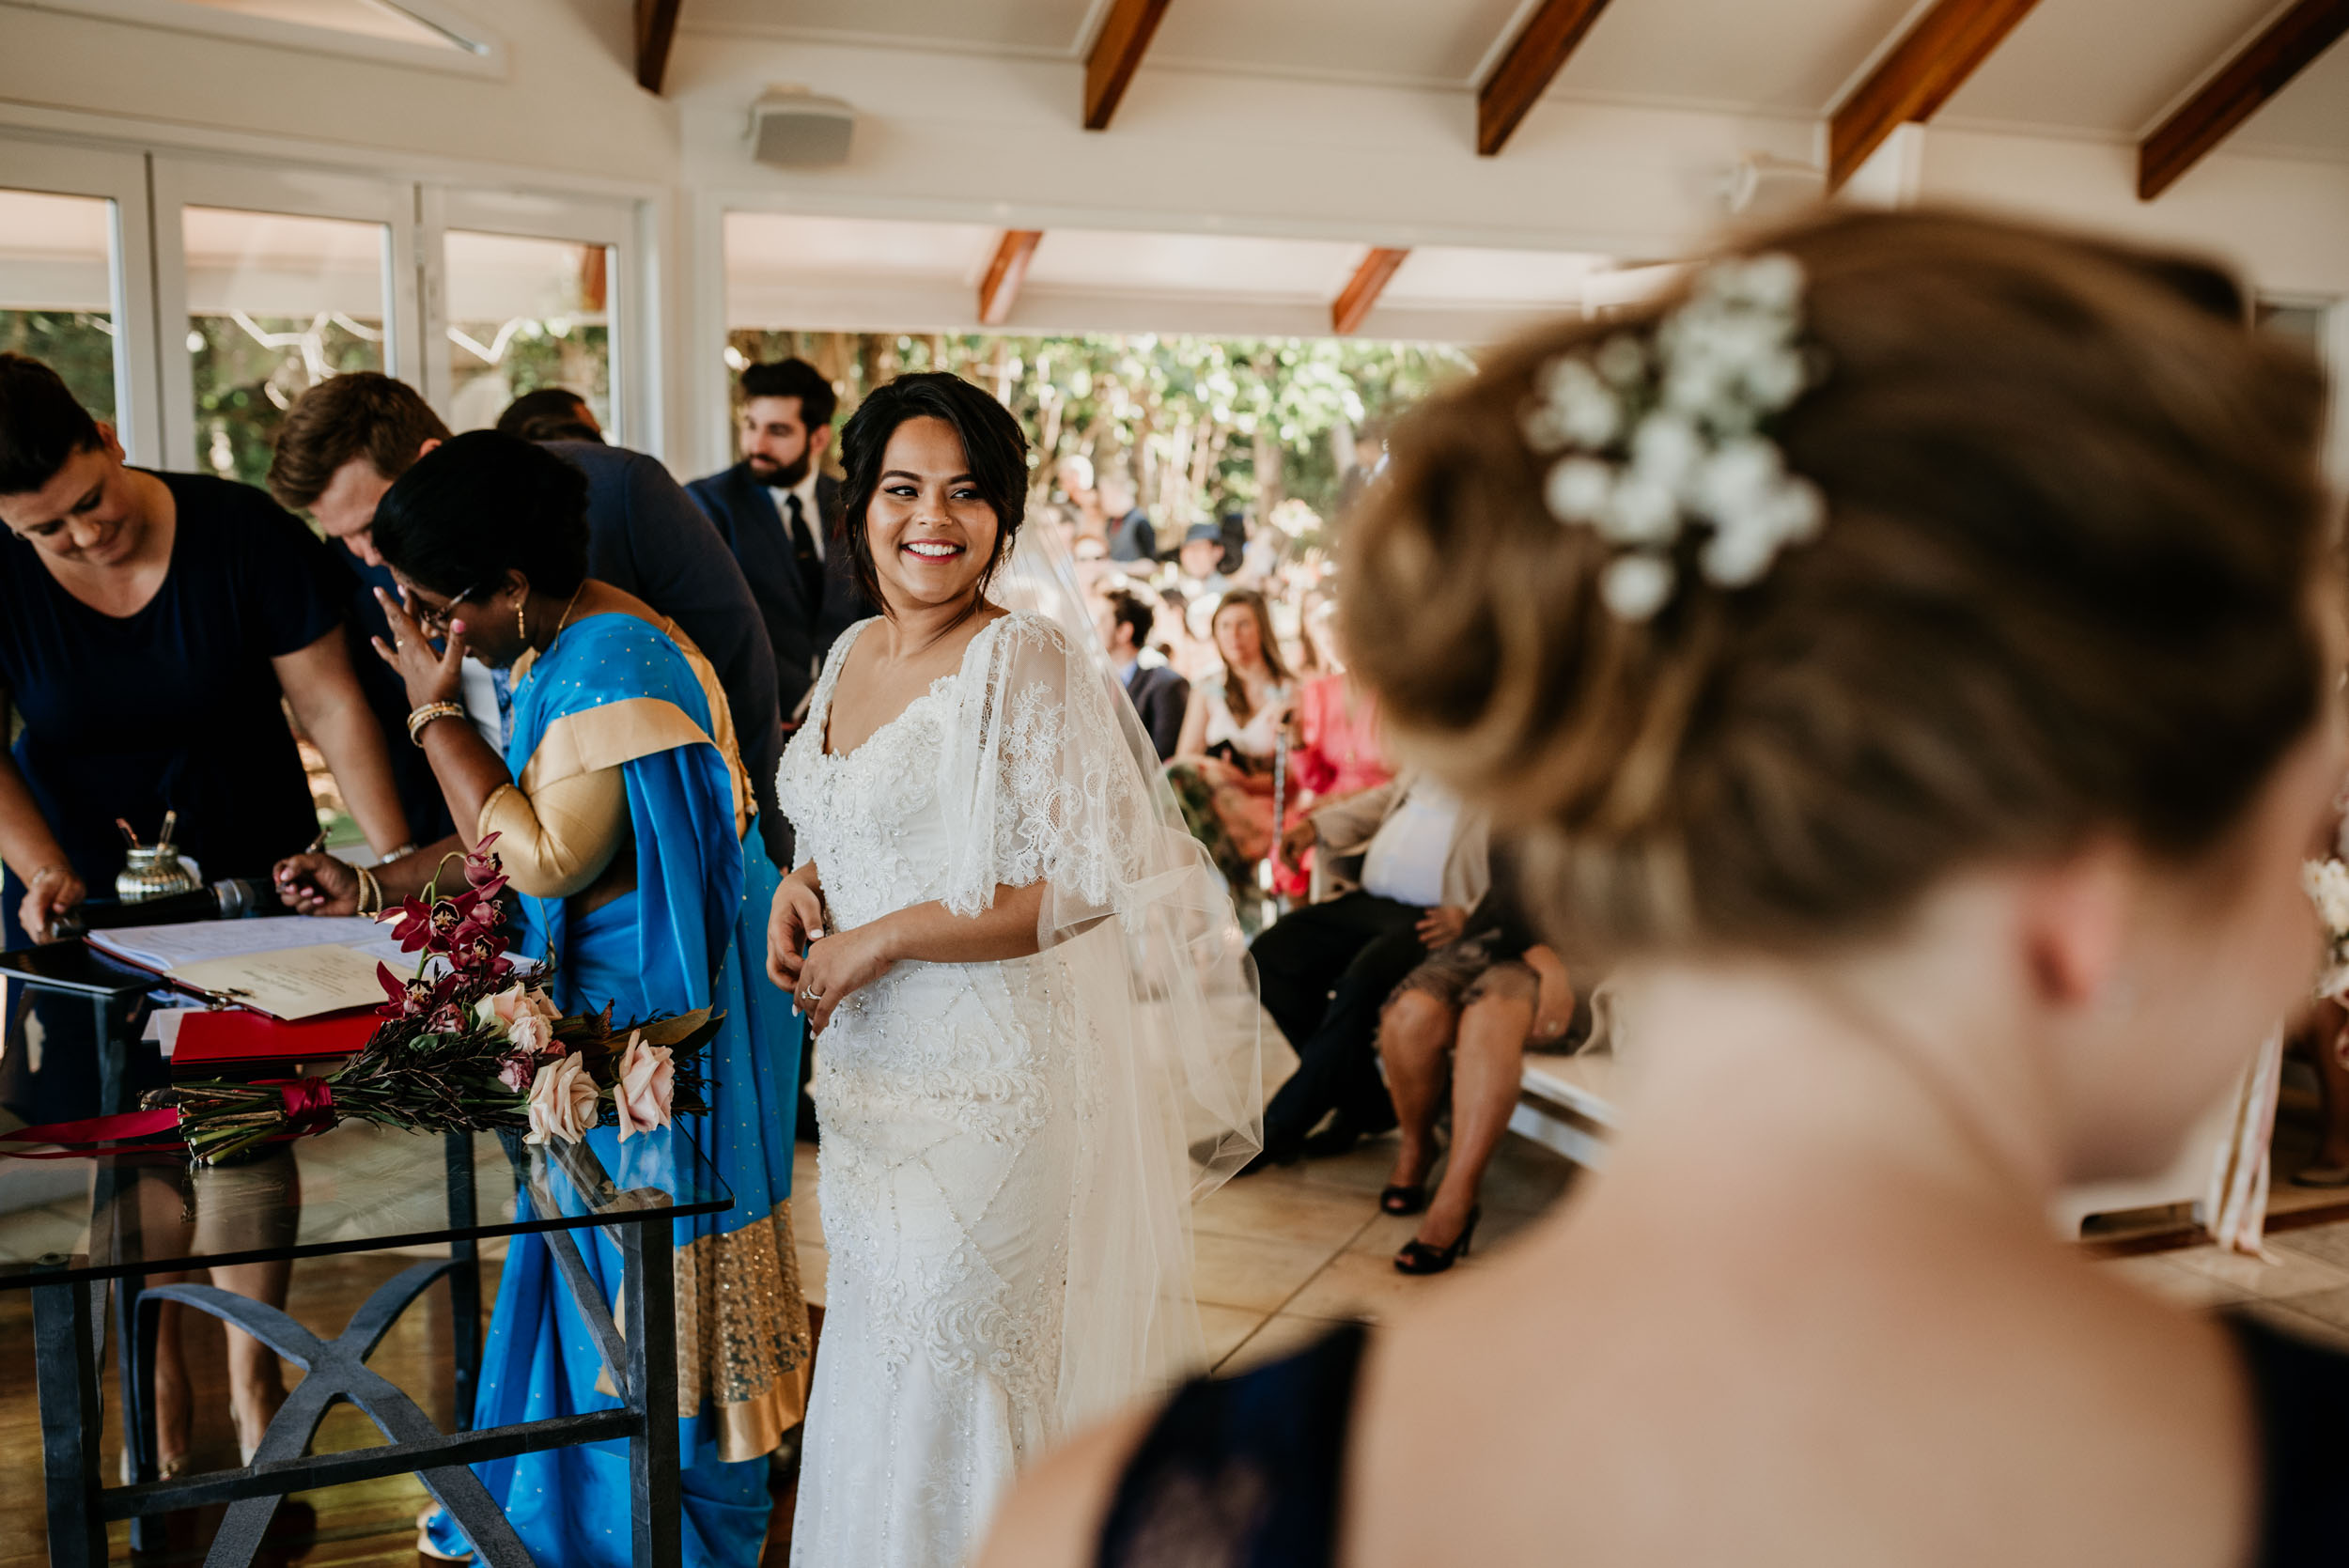 The Raw Photographer - Cairns Wedding Photographer - Palm Cove Ceremony - Pullman Reception - Dress White House Boutique-29.jpg